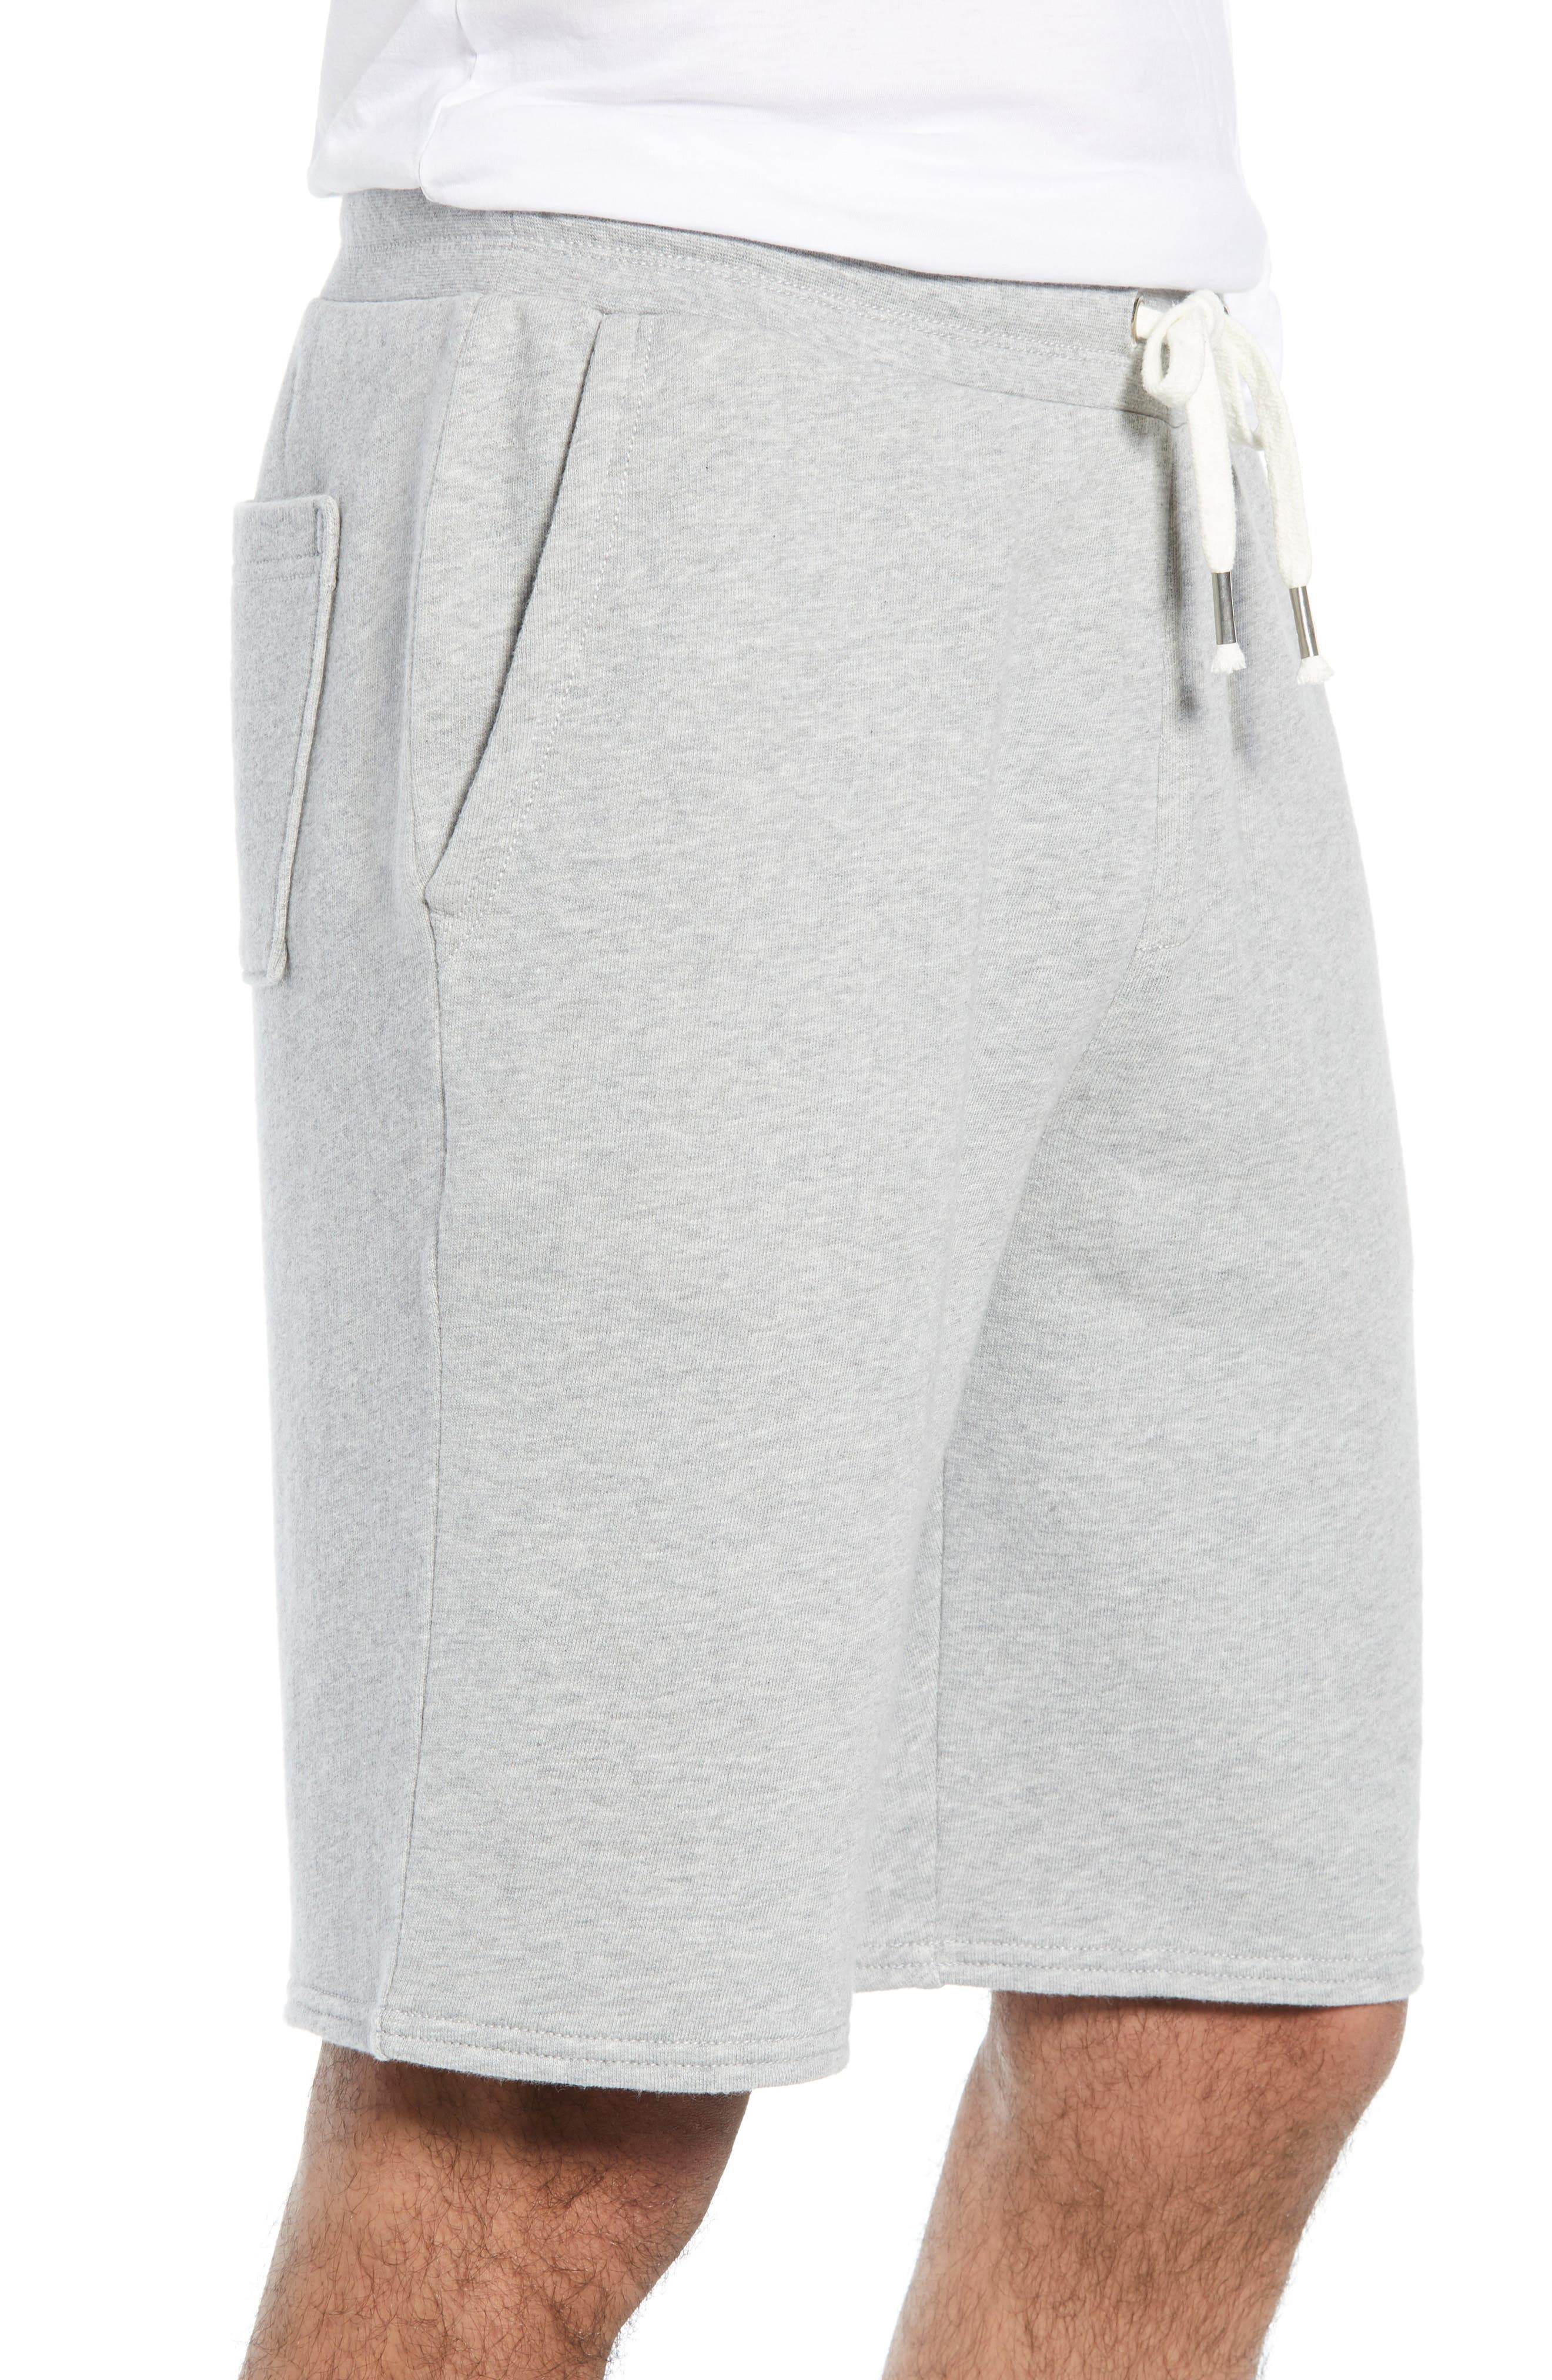 THE RAIL, Heathered Athletic Shorts, Alternate thumbnail 3, color, 050